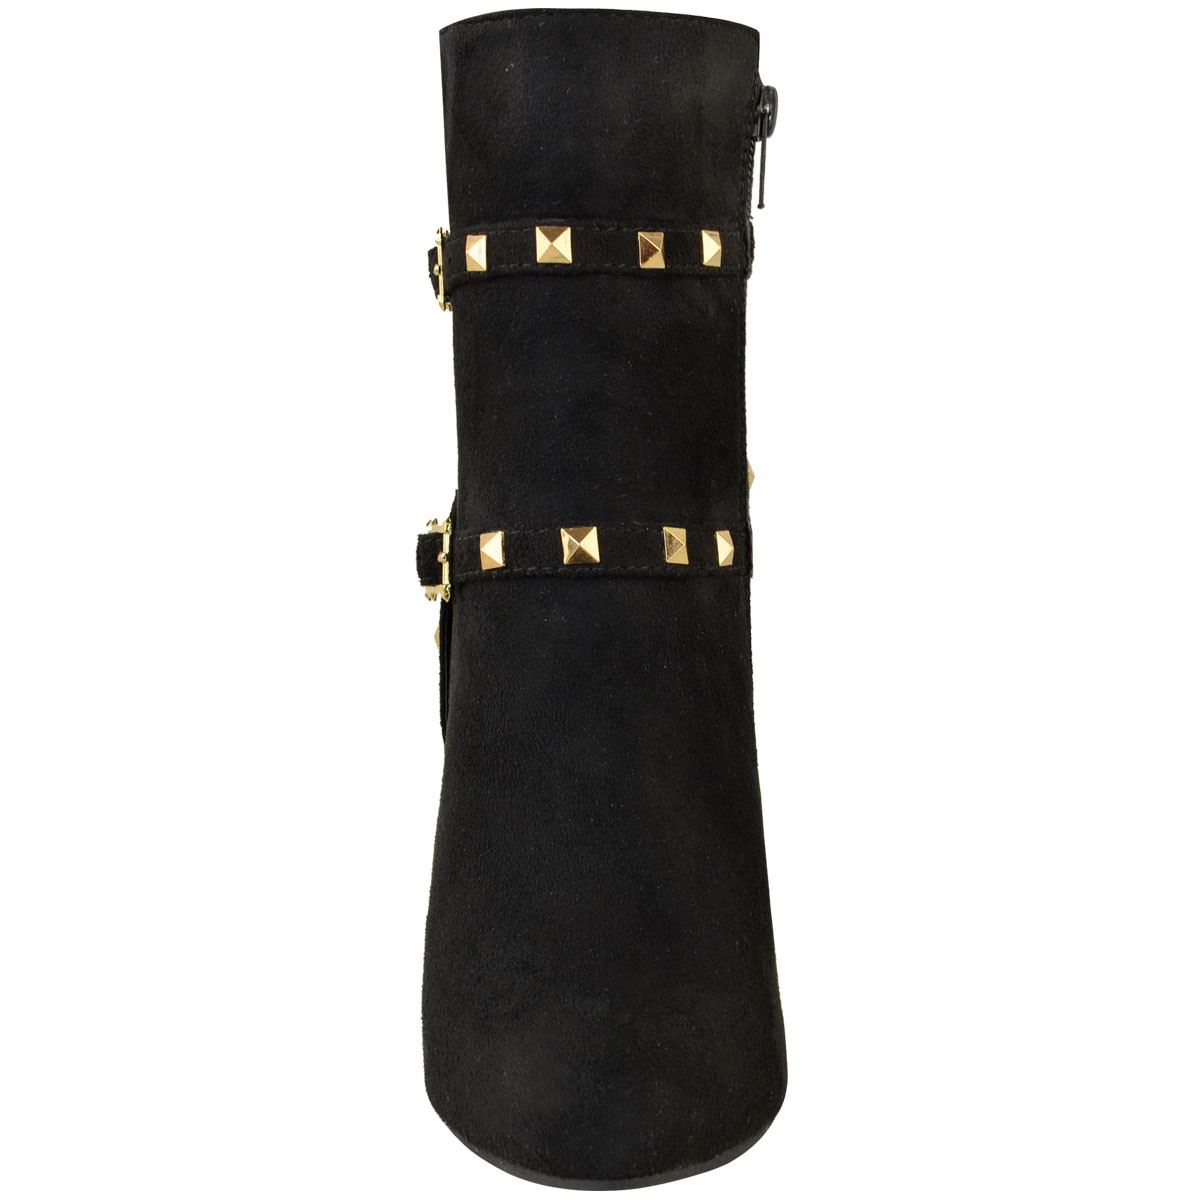 thumbnail 24 - WOMENS-LADIES-LOW-BLOCK-HEEL-CHELSEA-ANKLE-BOOTS-CUT-OUT-LACE-UP-SHOES-NEW-SIZE